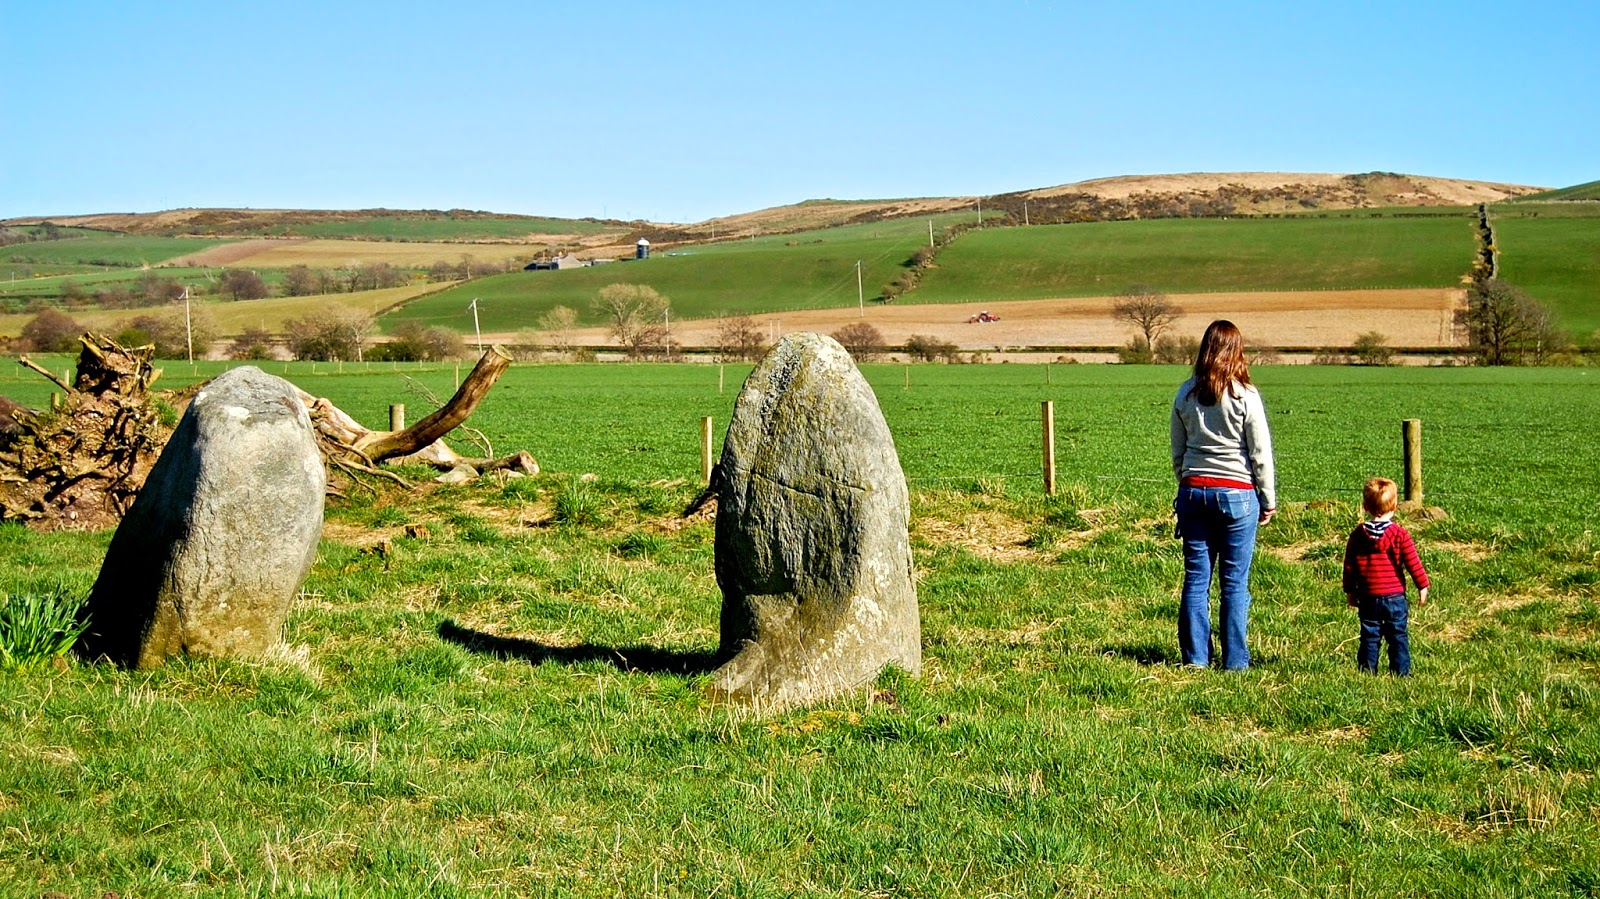 Kate and Jackson help complete the stone circle